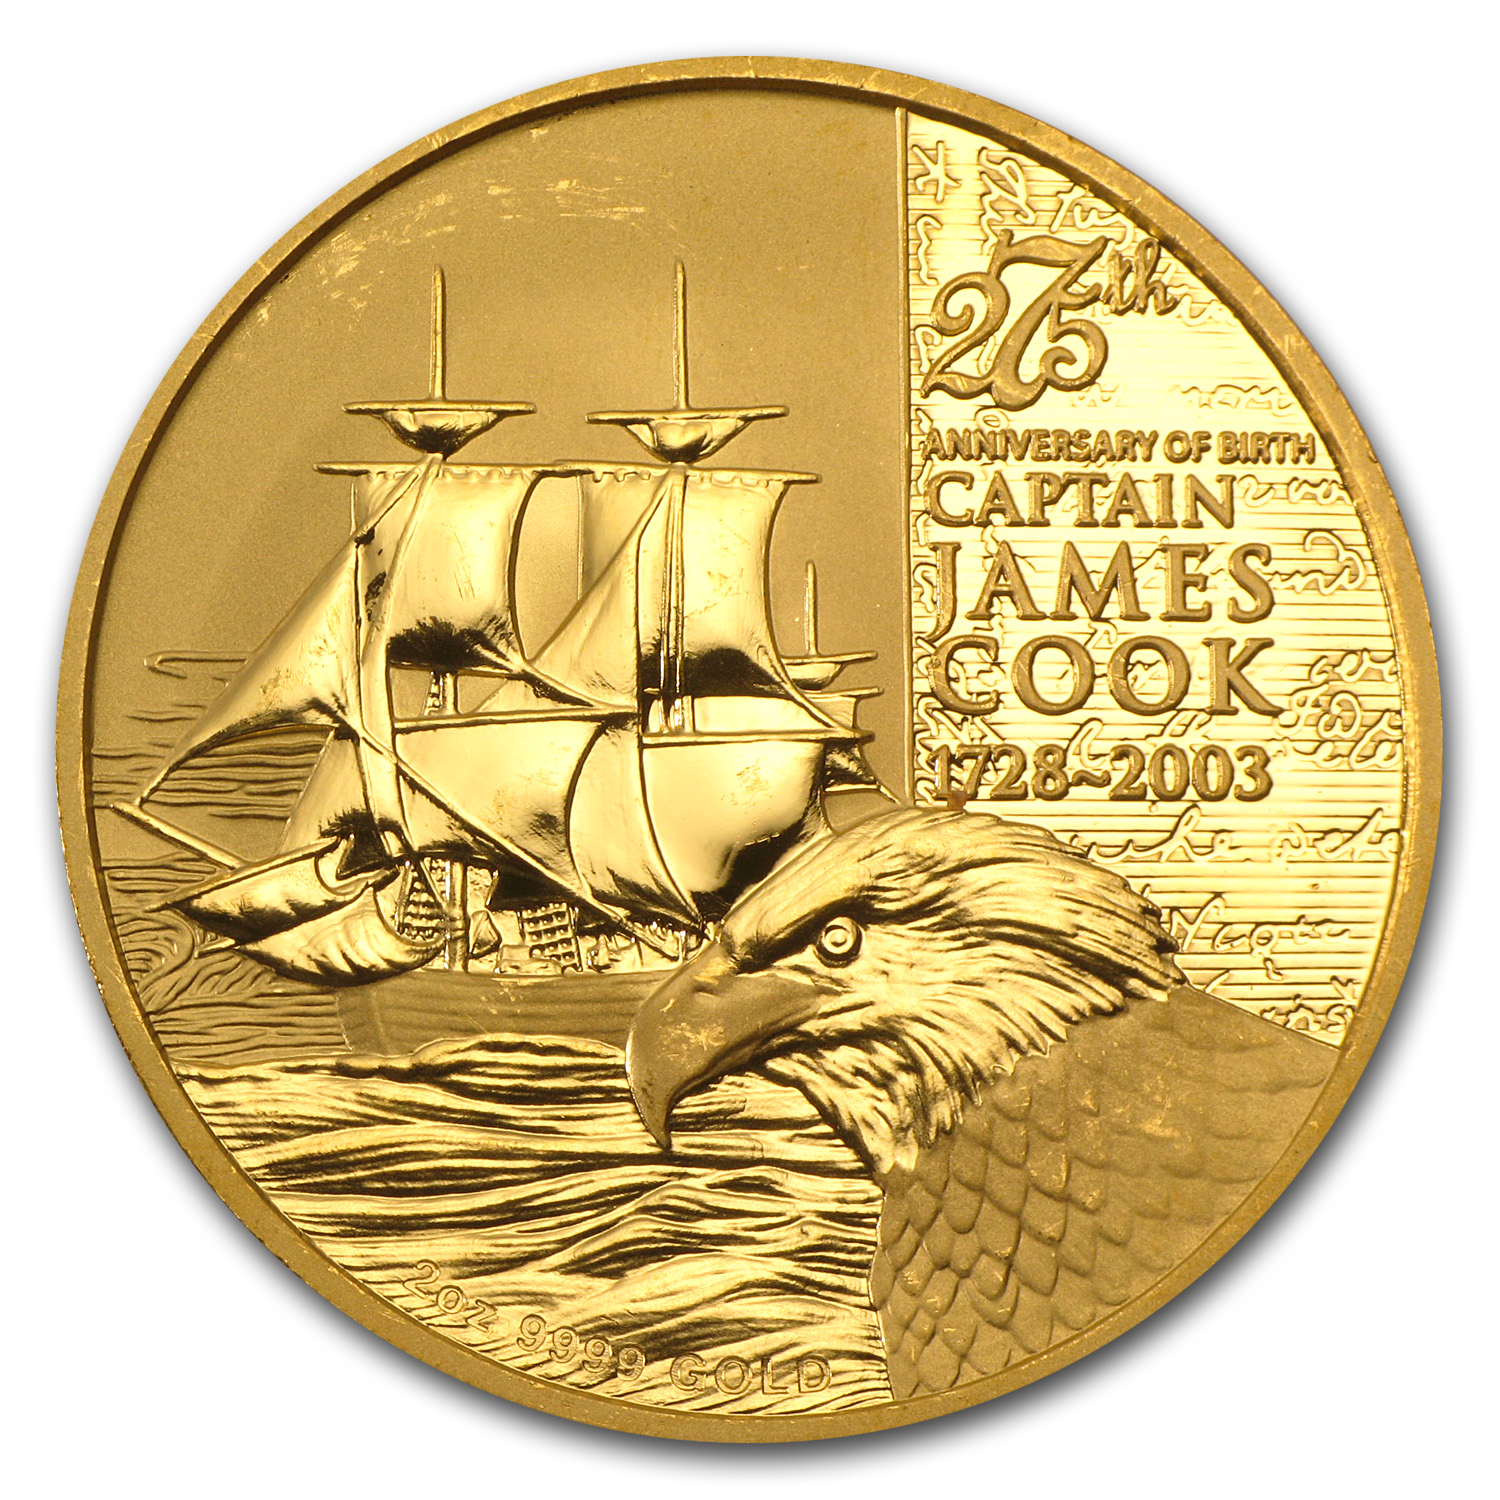 2003 Cook Islands Gold $200 - Proof